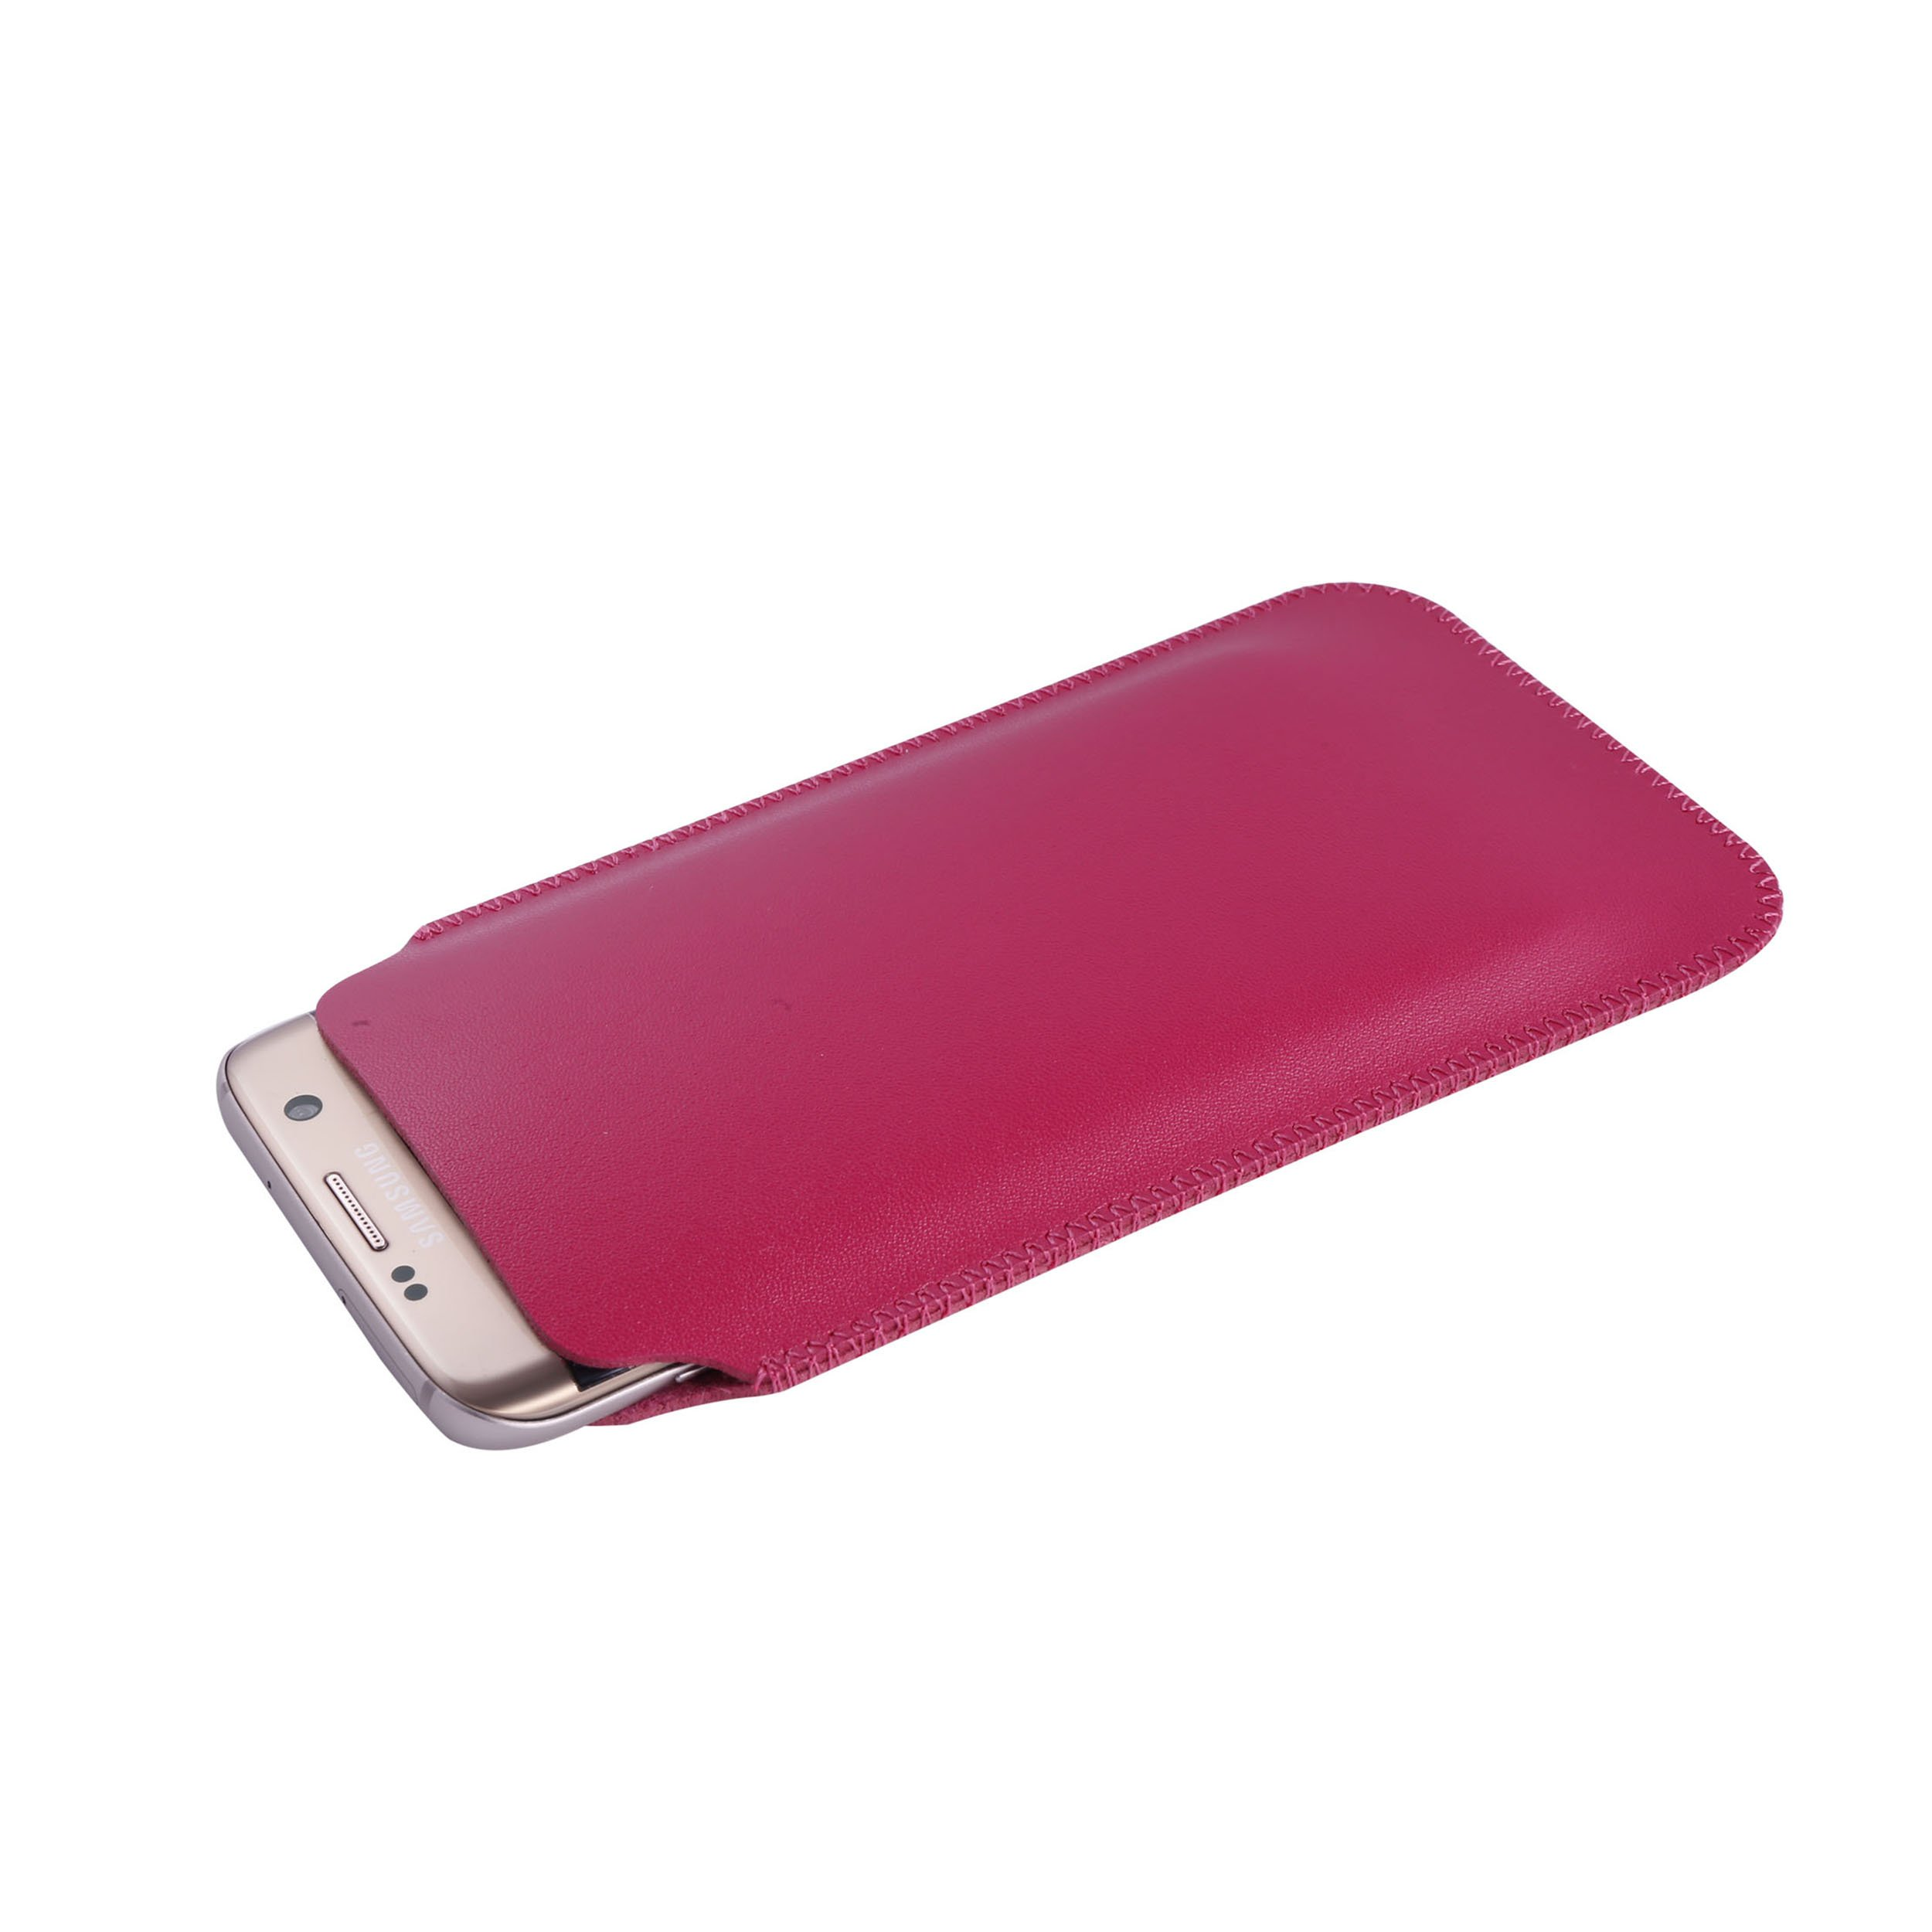 UltraJacket Light & Slim Durable Vegan-Friendly PU Leather Sleeve Case with SuperSoft Microfiber Lining to Prevent Scratching & Damage for Samsung Galaxy S7 Edge - Frustration-Free Packaging - Fuchsia